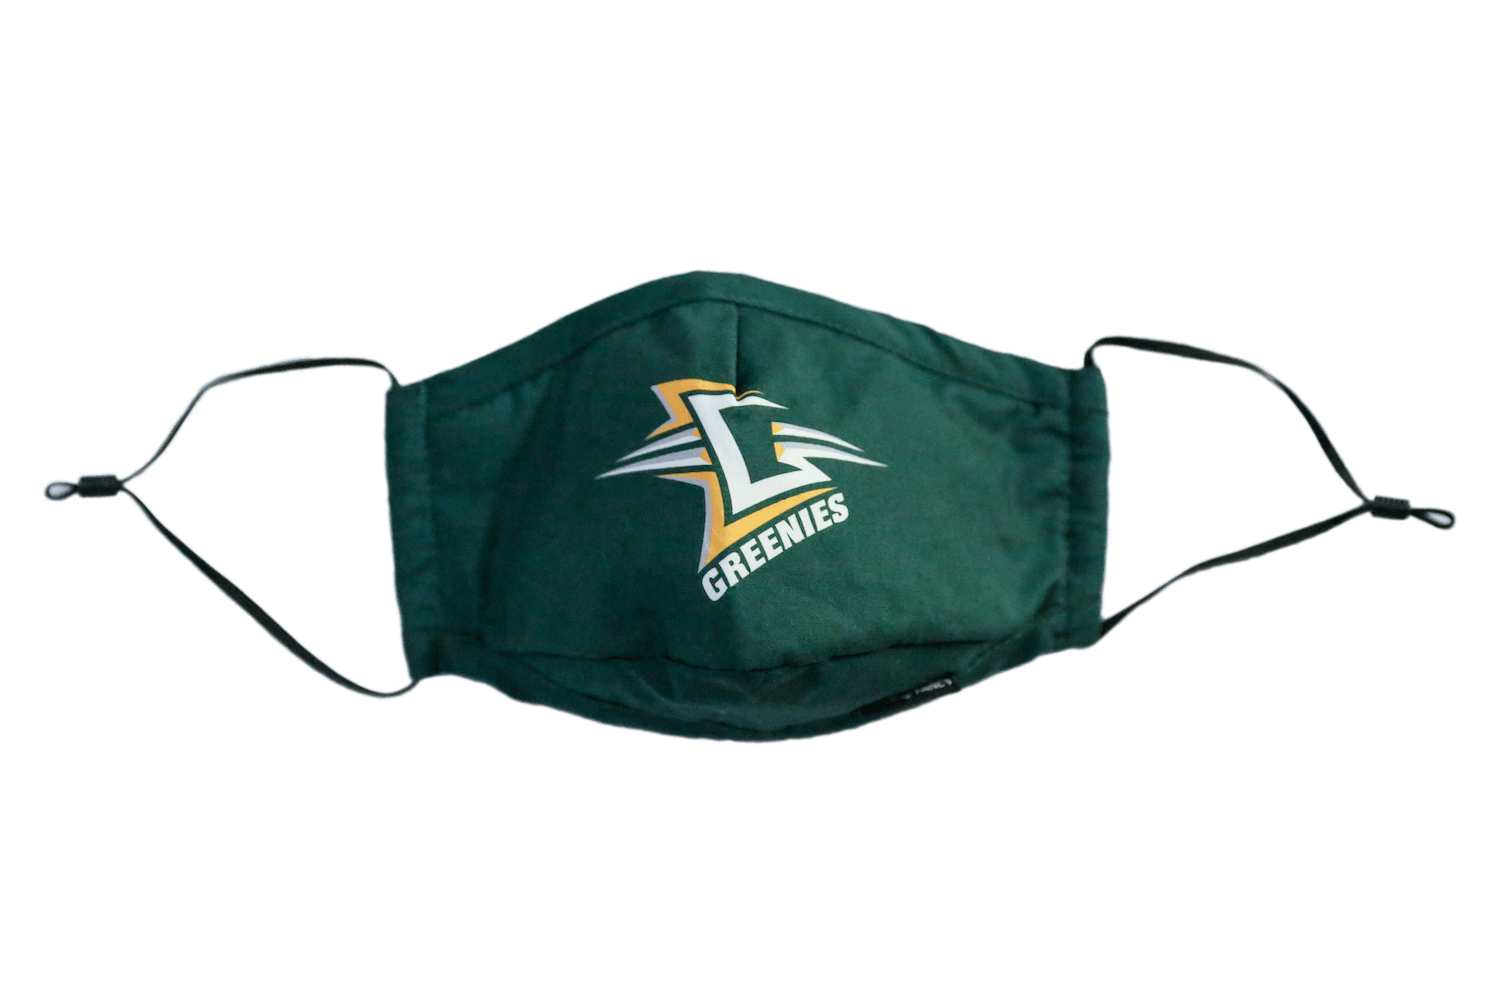 Greenies Face Mask (Premium)